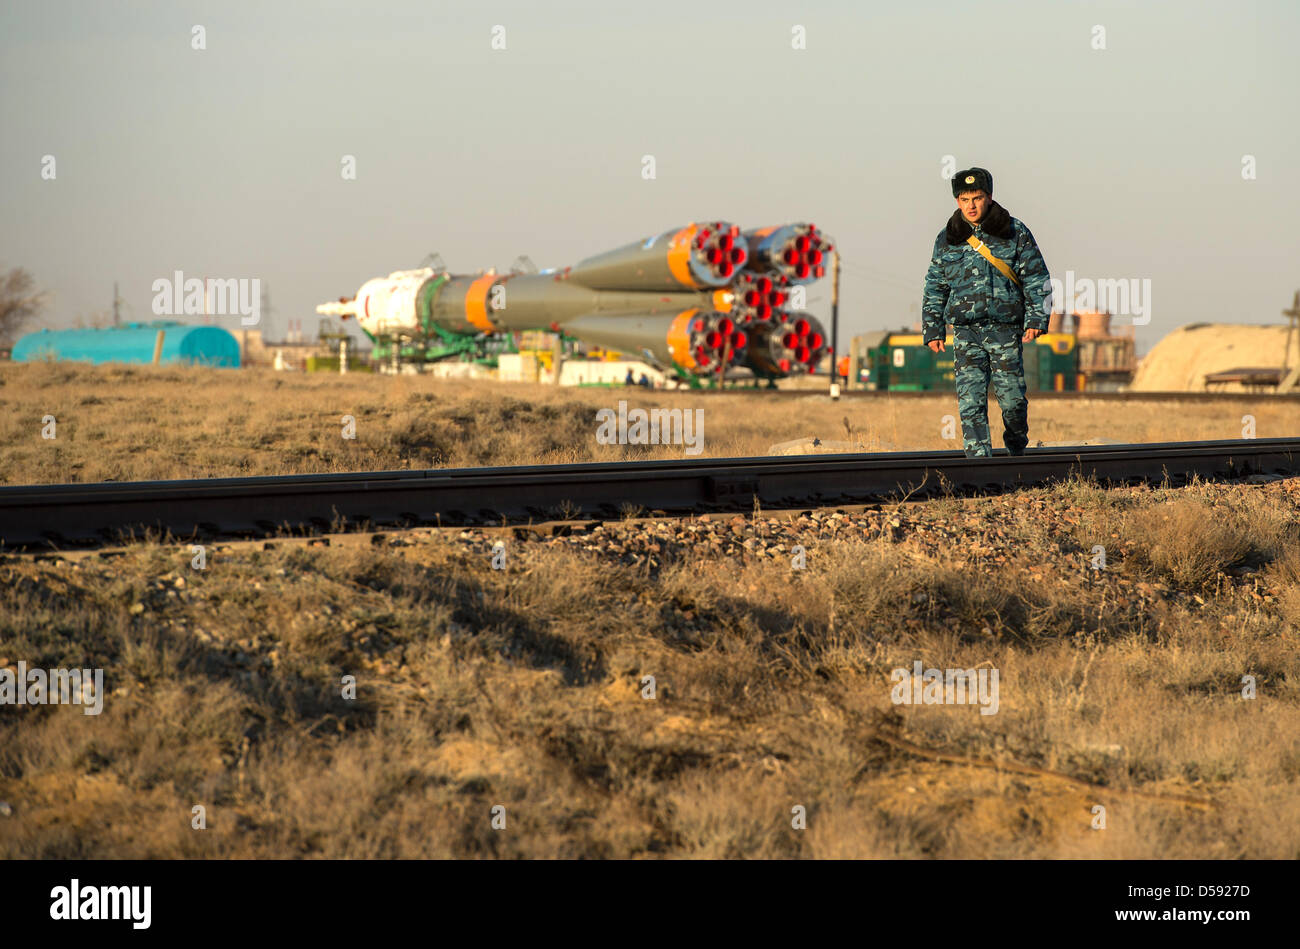 The Russian Space Agency Soyuz TMA-08M spacecraft is moved into position at the launch pad at the Baikonur Cosmodrome - Stock Image